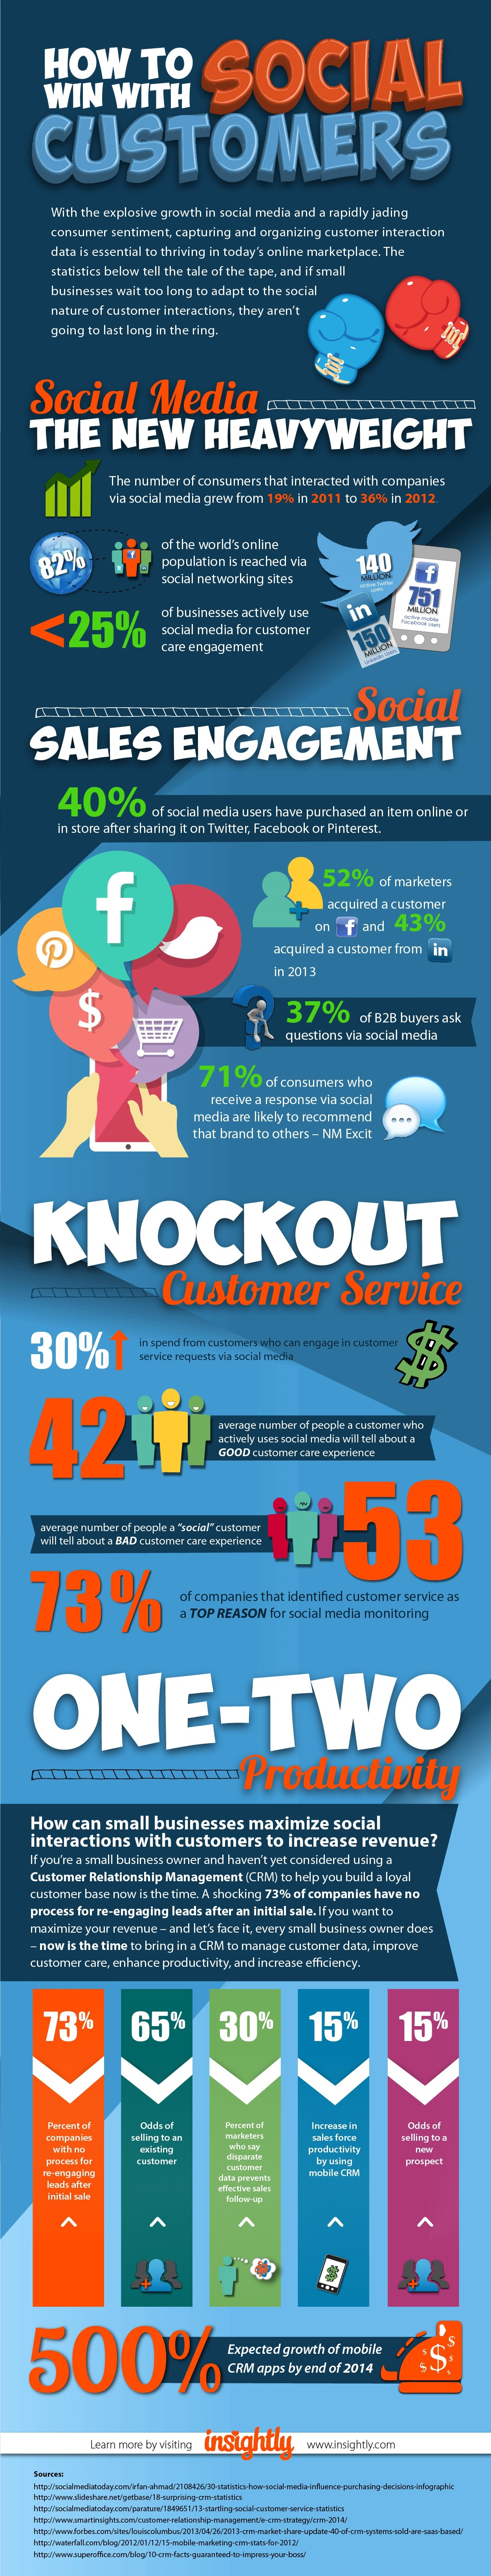 How Smbs Can Use Social To Win Customers And Keep Them Infographic Social Media Infographic Social Media Business Social Media Resources